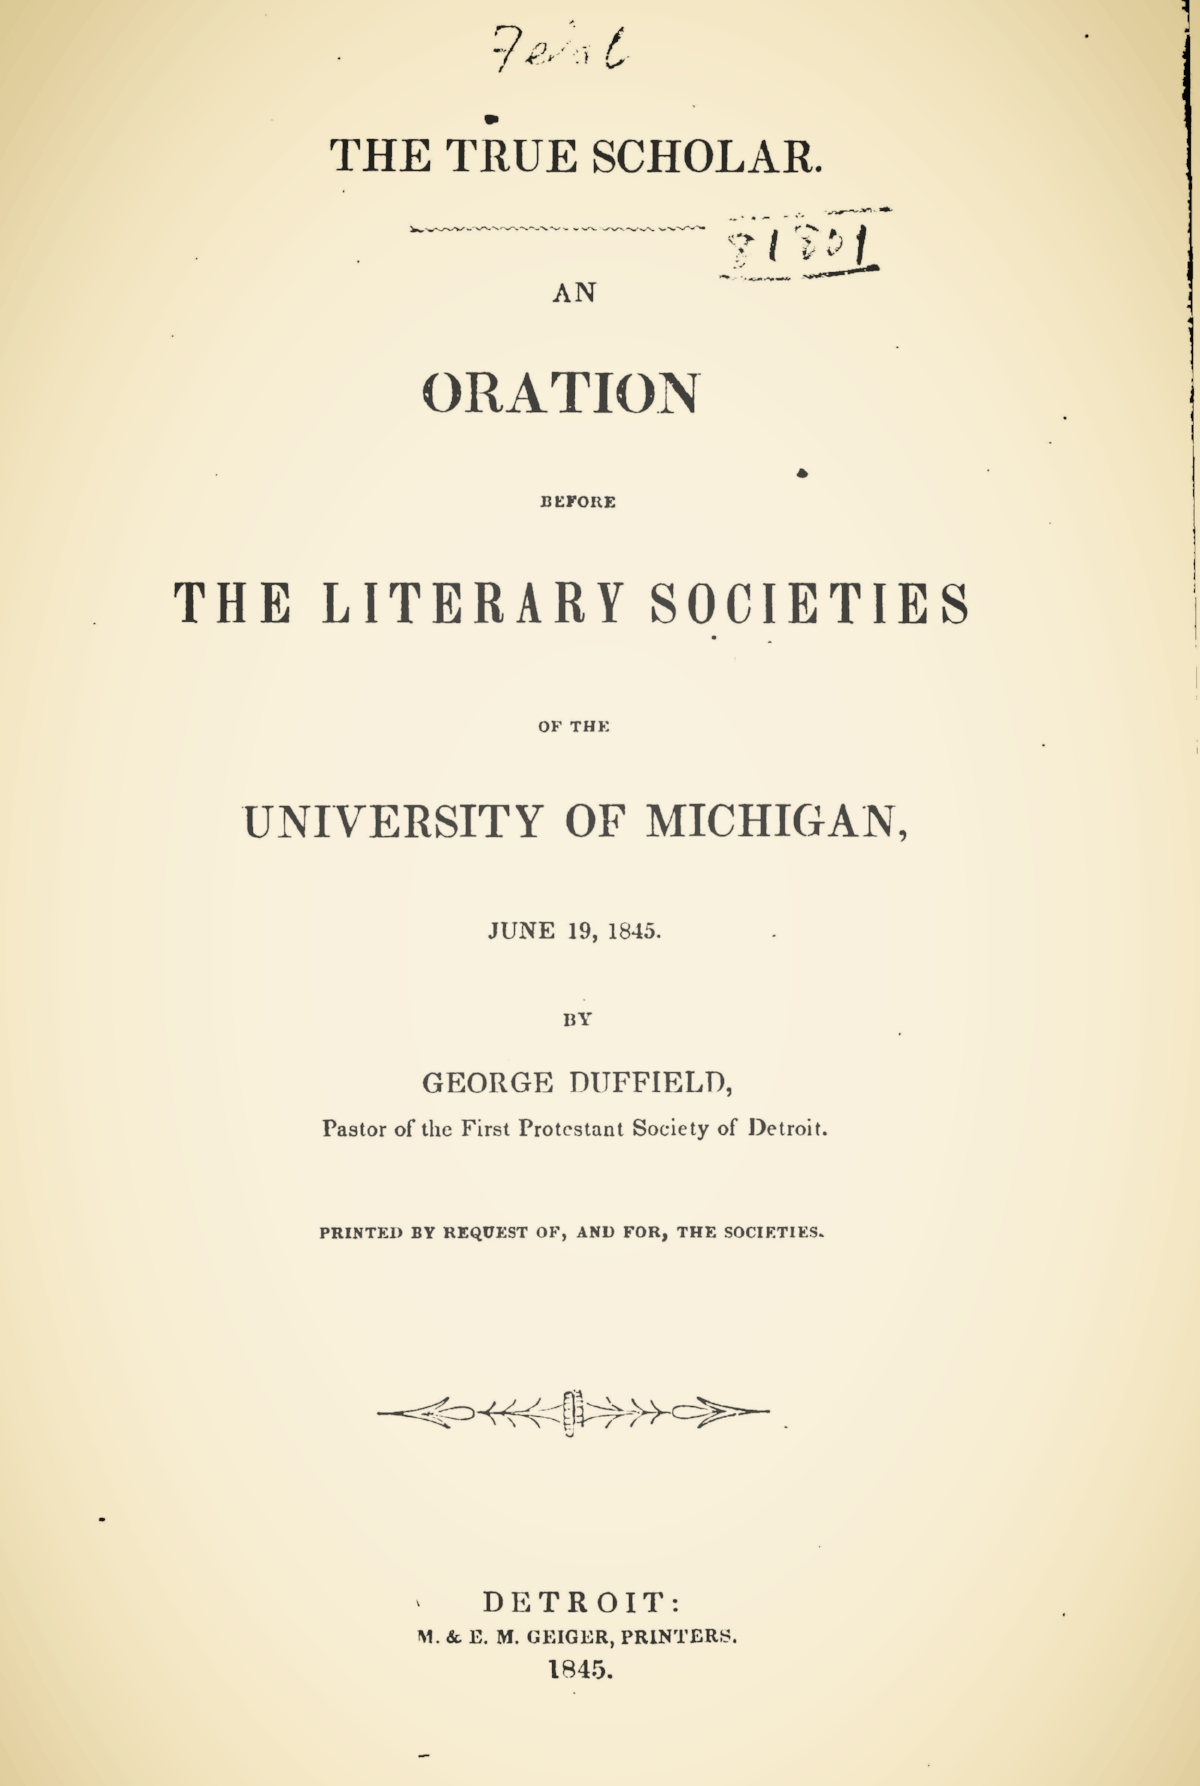 Duffield, IV, George, The True Scholar Title Page.jpg